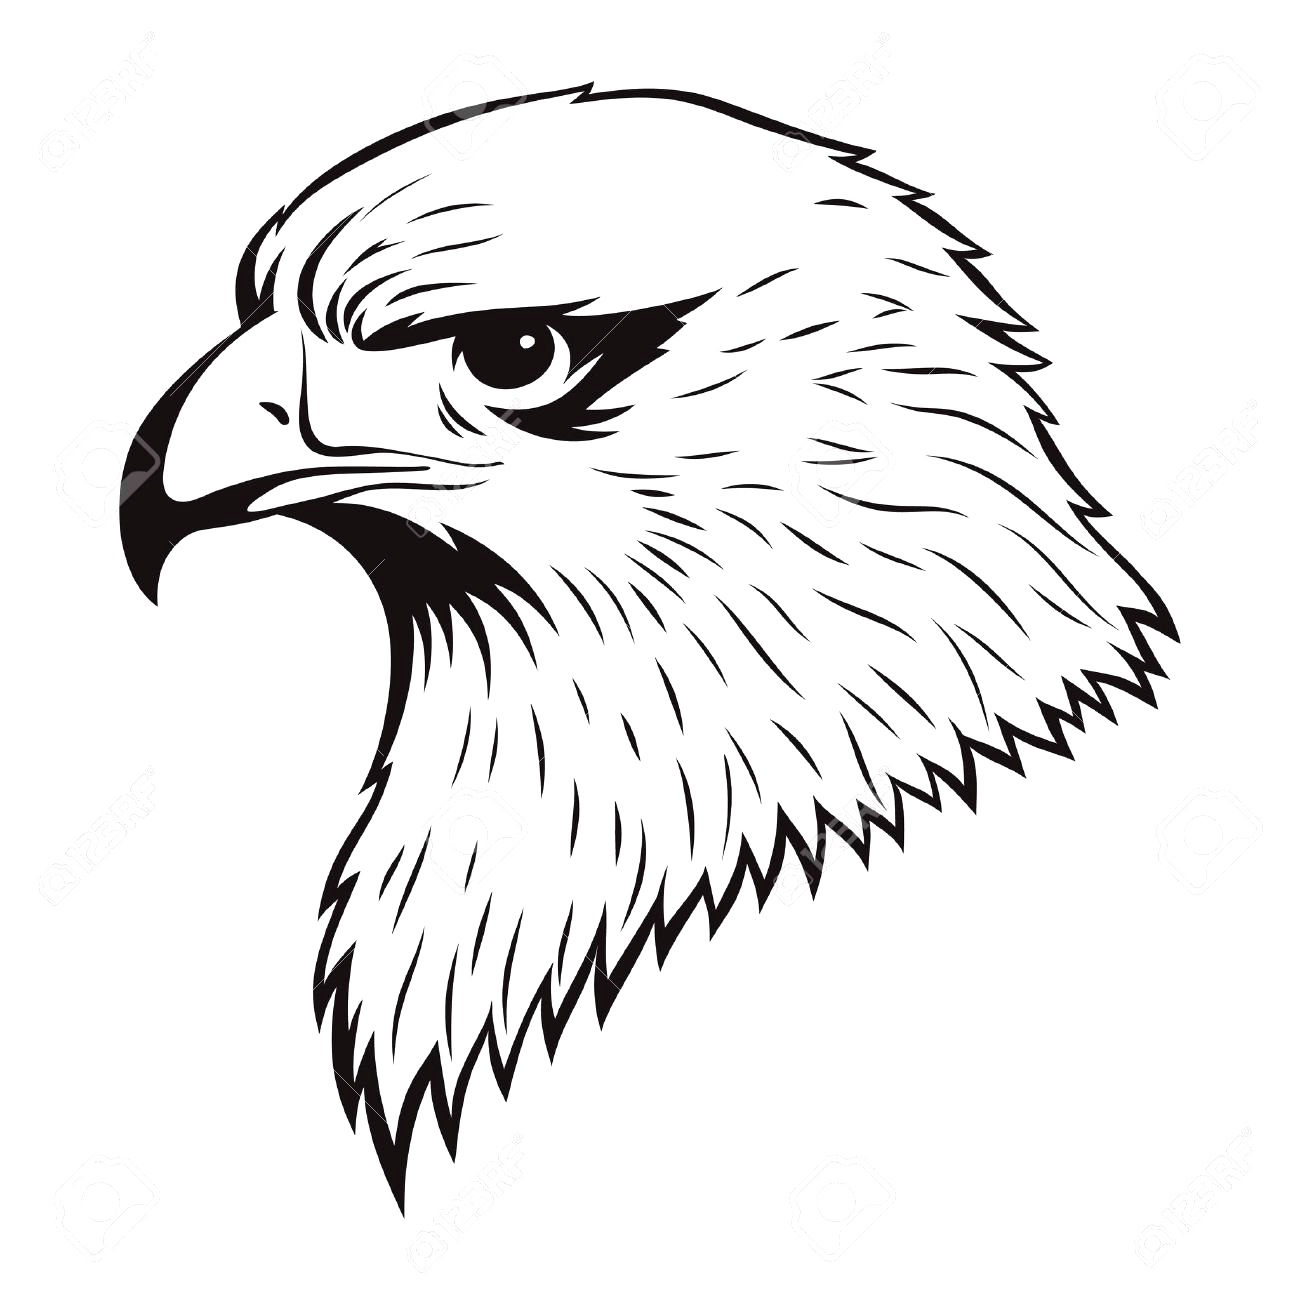 Eagle Drawings - ClipArt Best